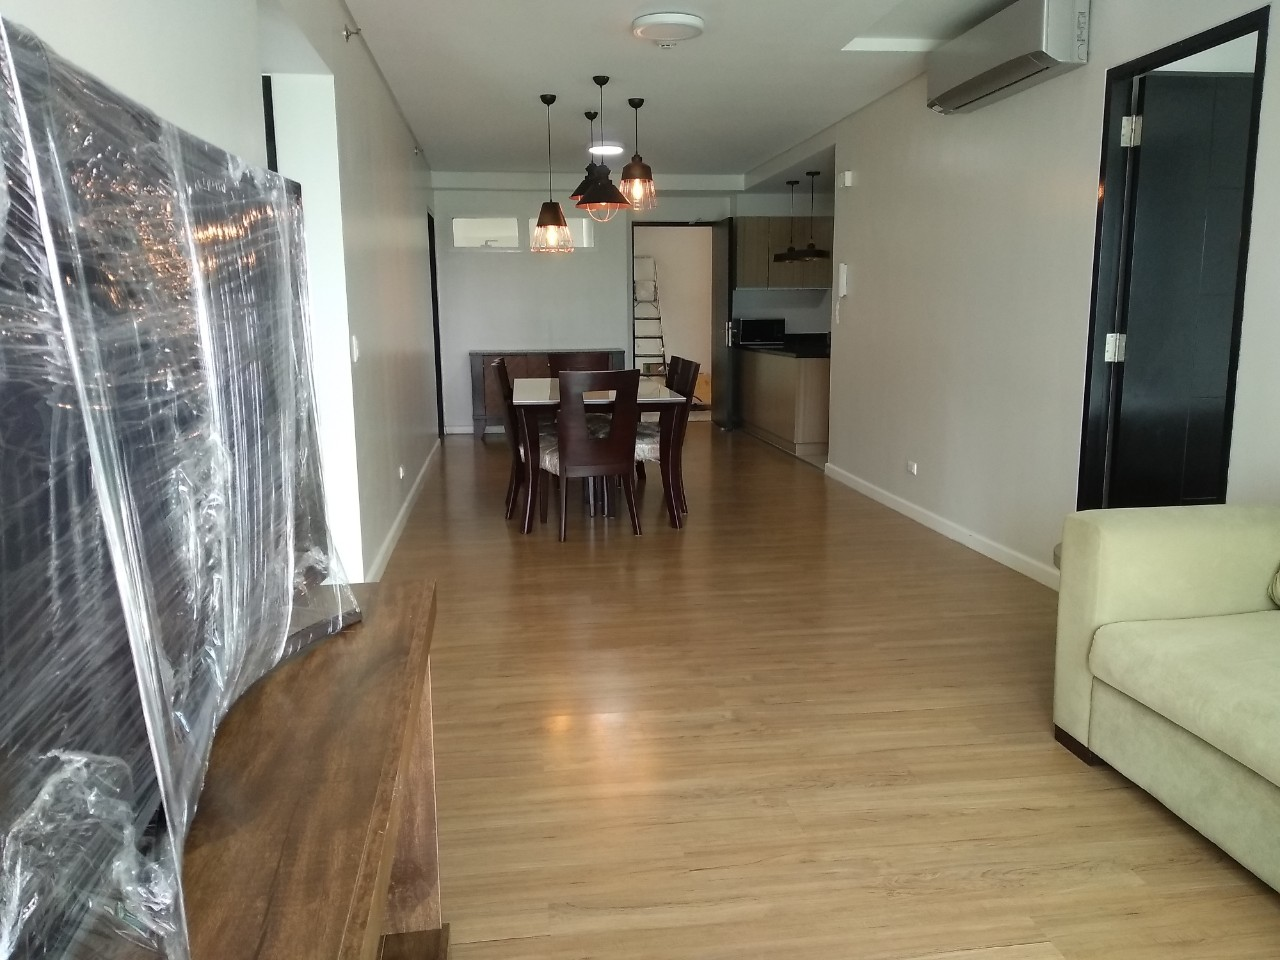 3BR Condo For Lease, The Sequoia at Two Serendra 1